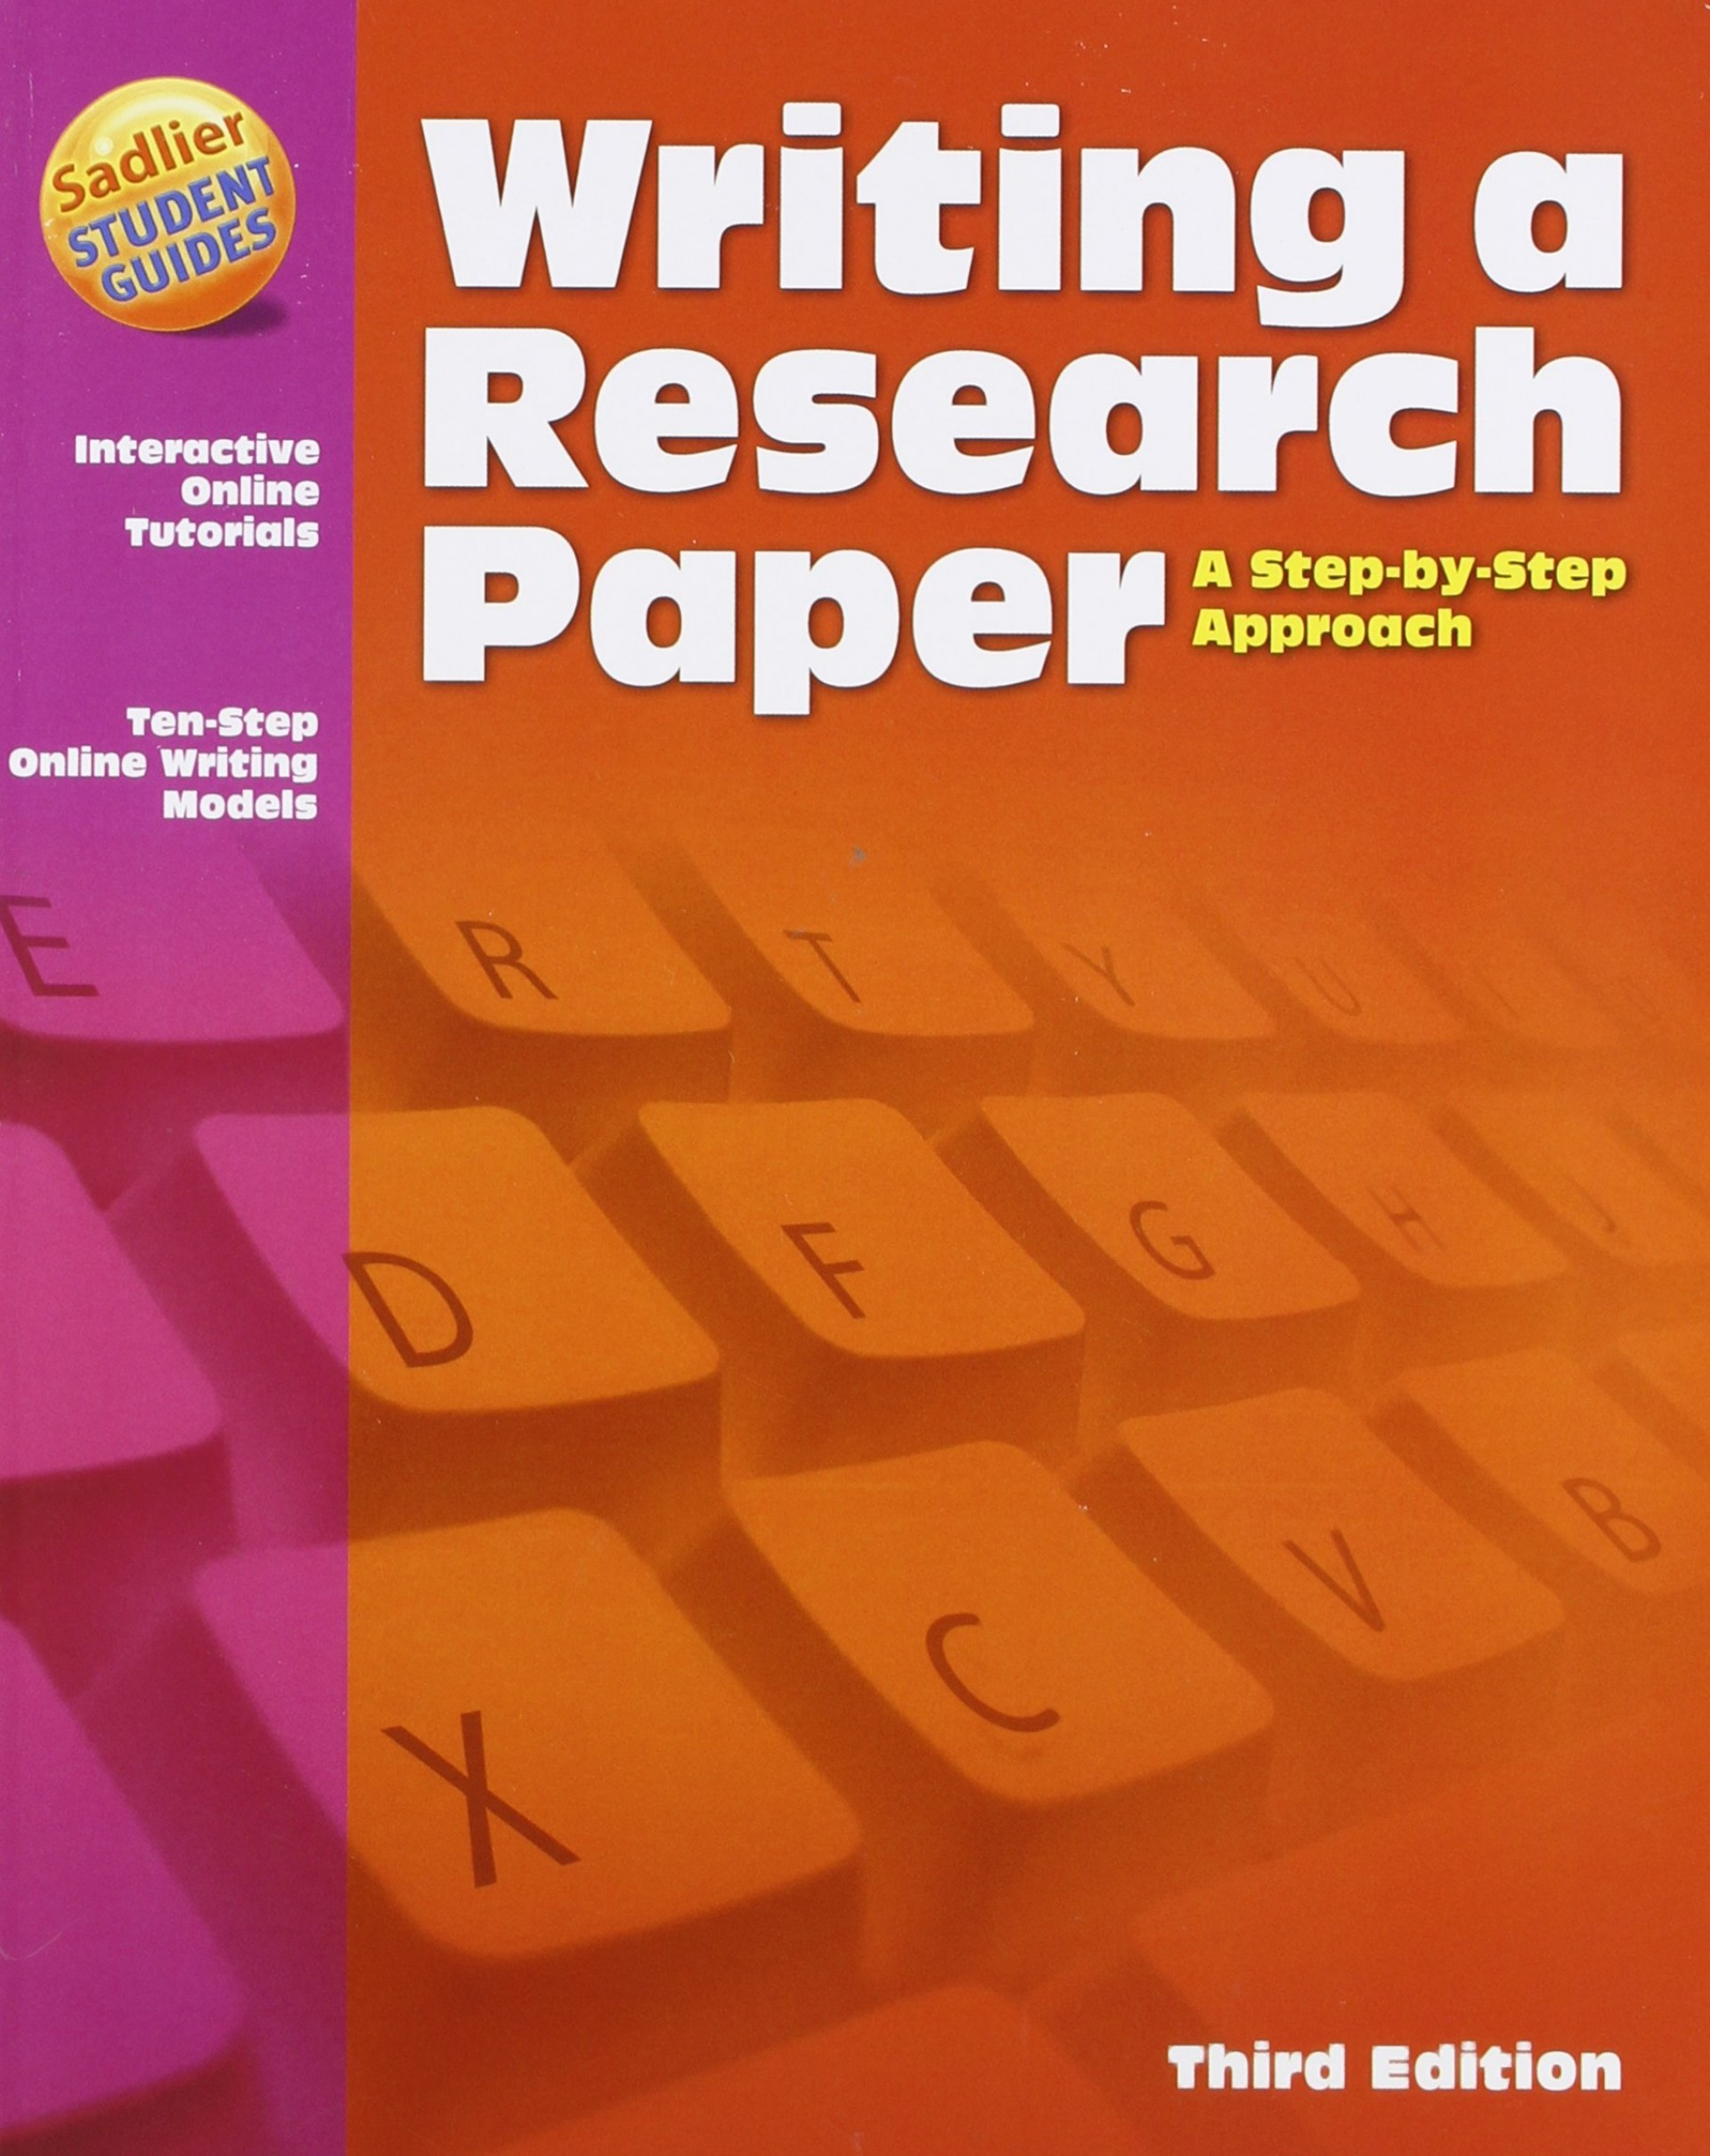 028 81uqfpthpml Research Paper Writing Fascinating Of Sample Introduction Steps A Pdf 1920